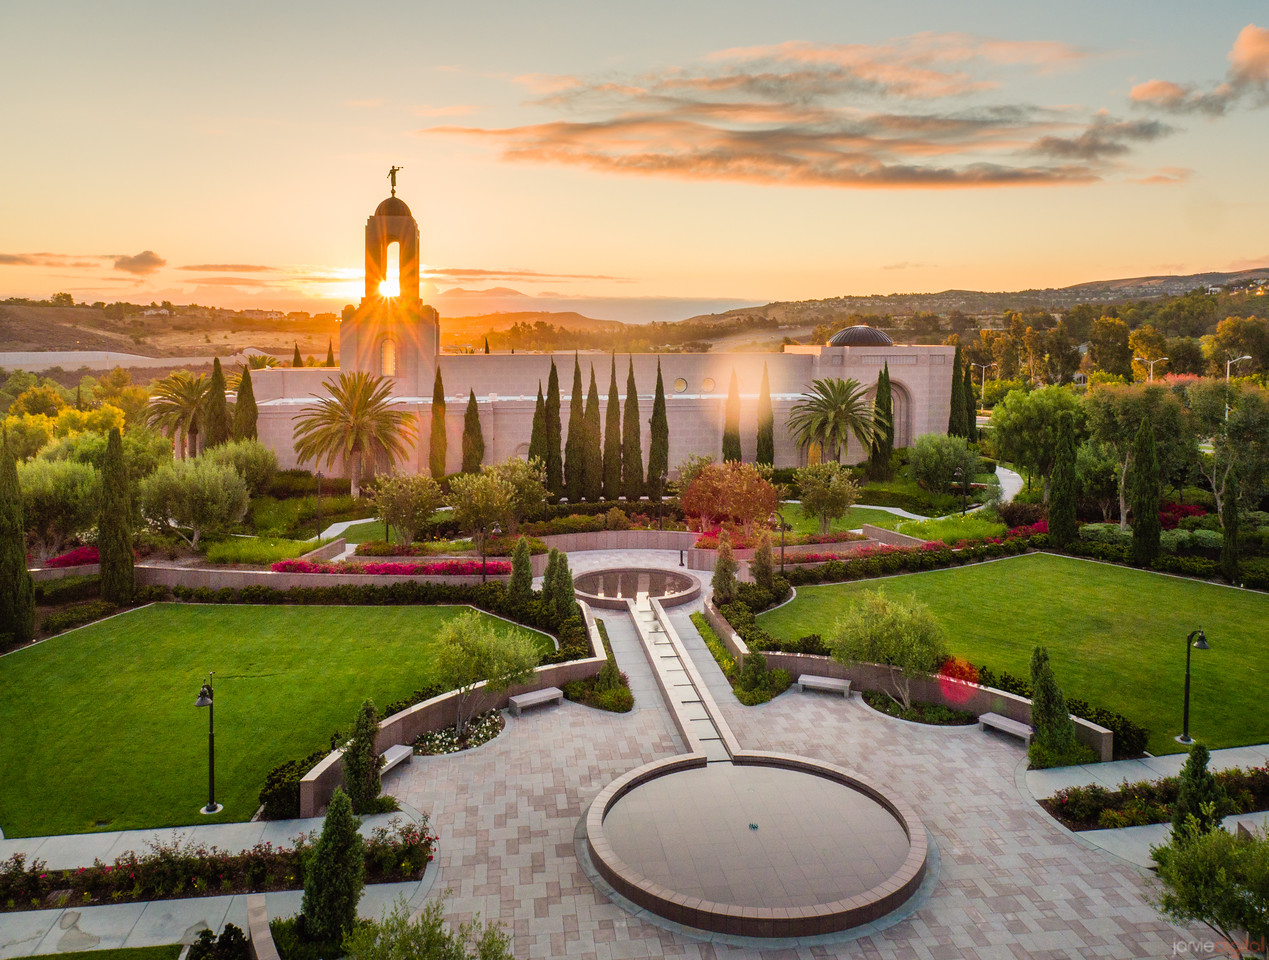 Newport Beach Temple - The warmth of the sun